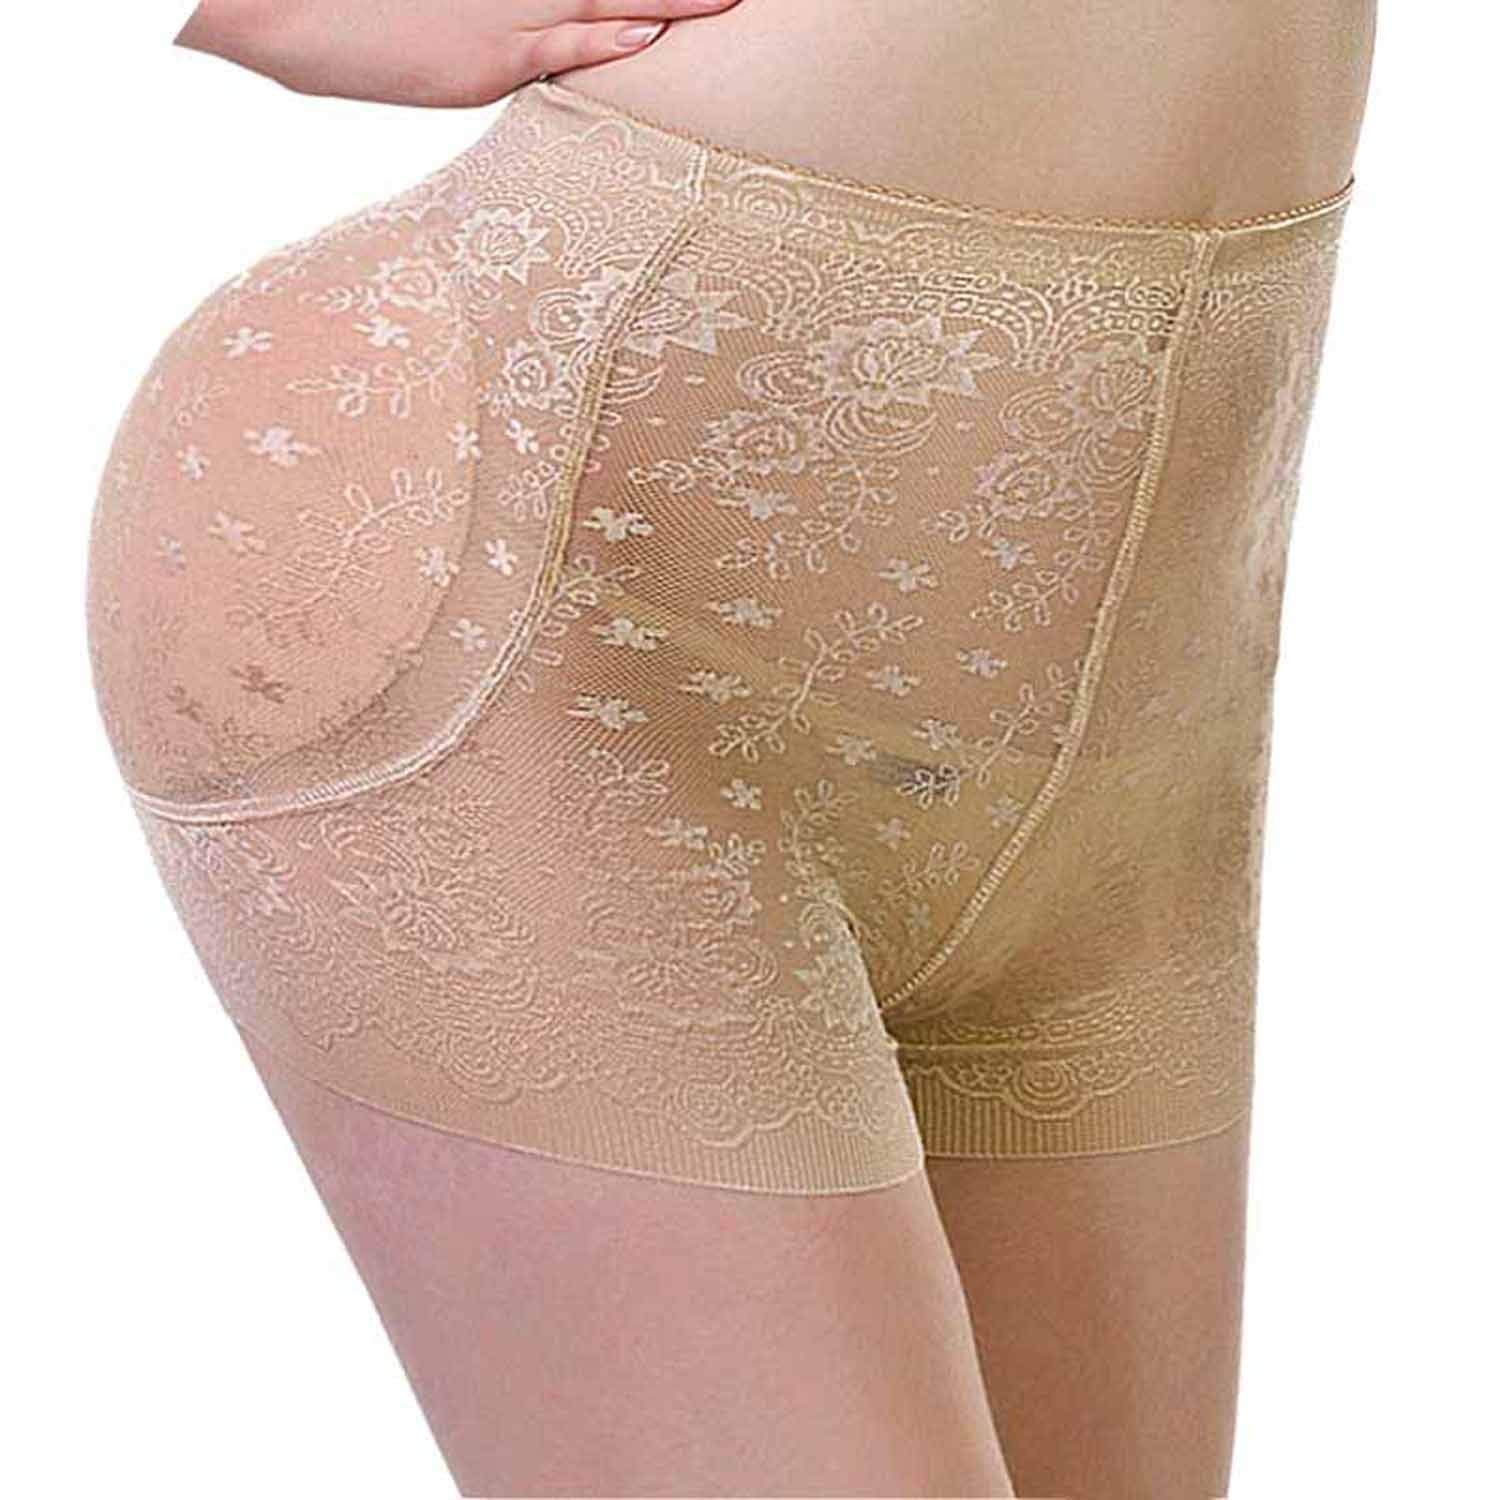 1b964094813 Get Quotations · Hip Enhancer Butt Lifter Padded Panty Removable Pads  Boyshorts Underwear